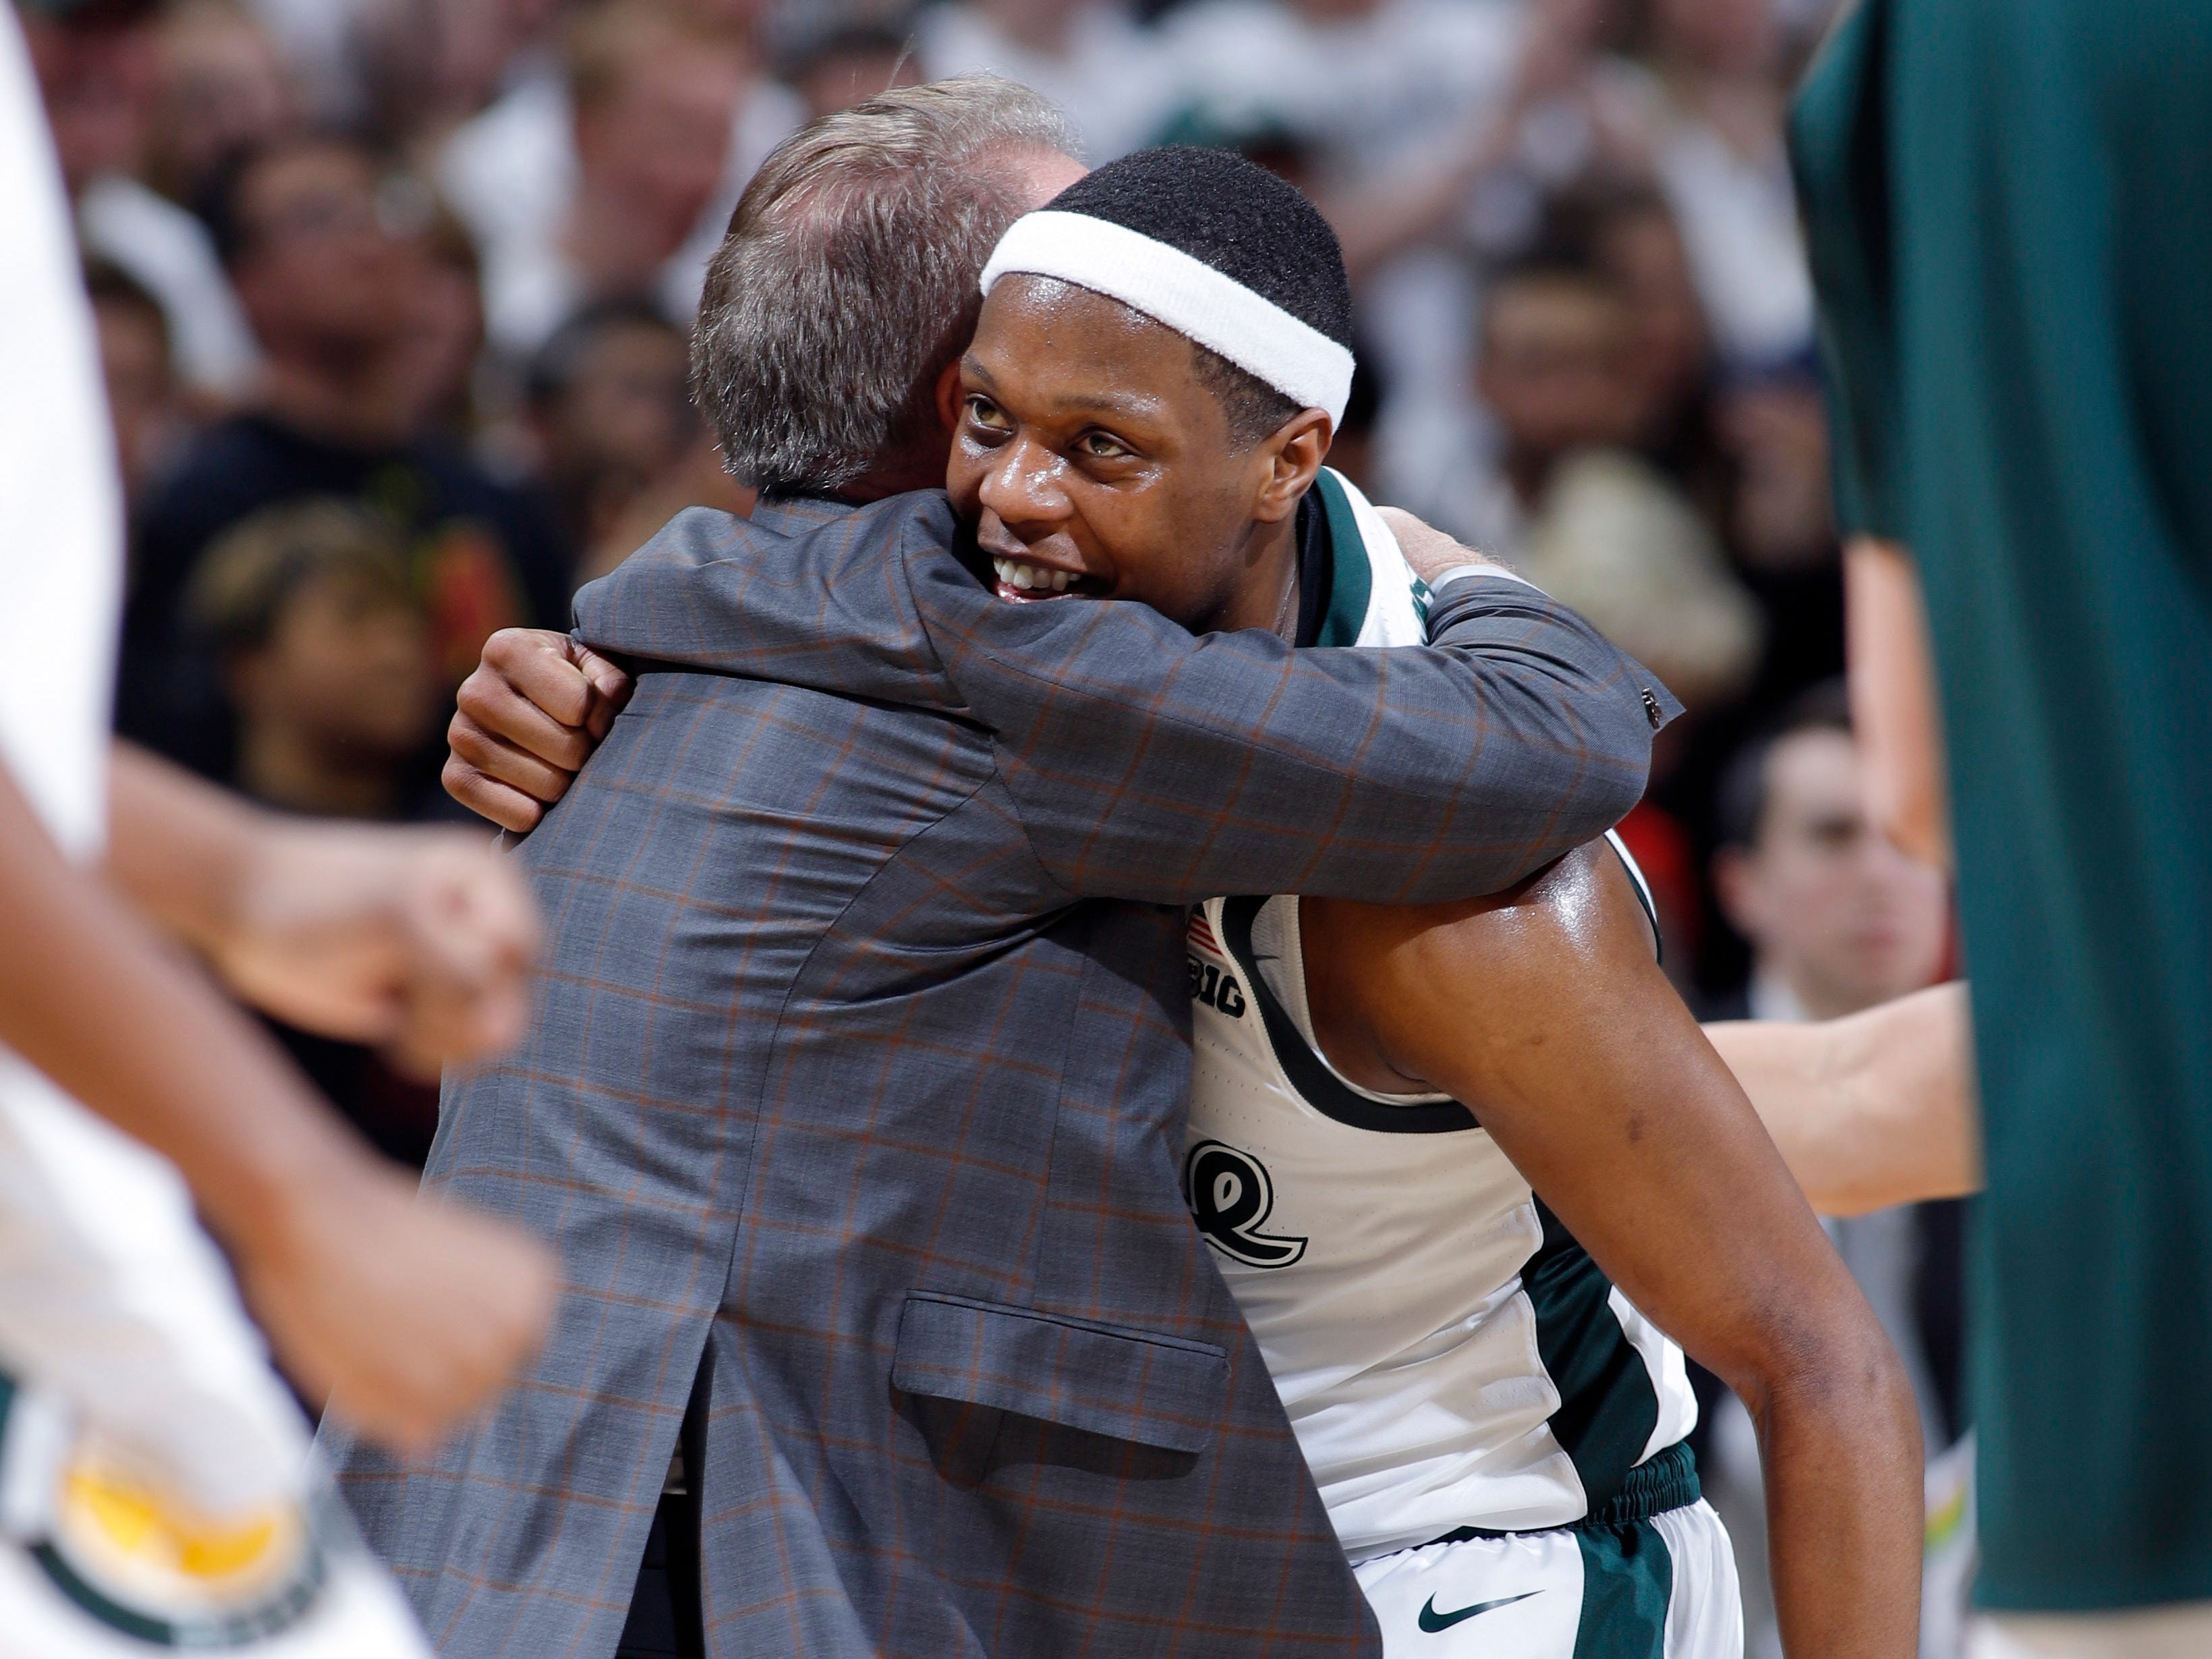 Michigan State coach Tom Izzo, left, hugs Cassius Winston during a timeout the second half of an NCAA college basketball game against Maryland, Monday, Jan. 21, 2019, in East Lansing, Mich. Michigan State won 69-55.